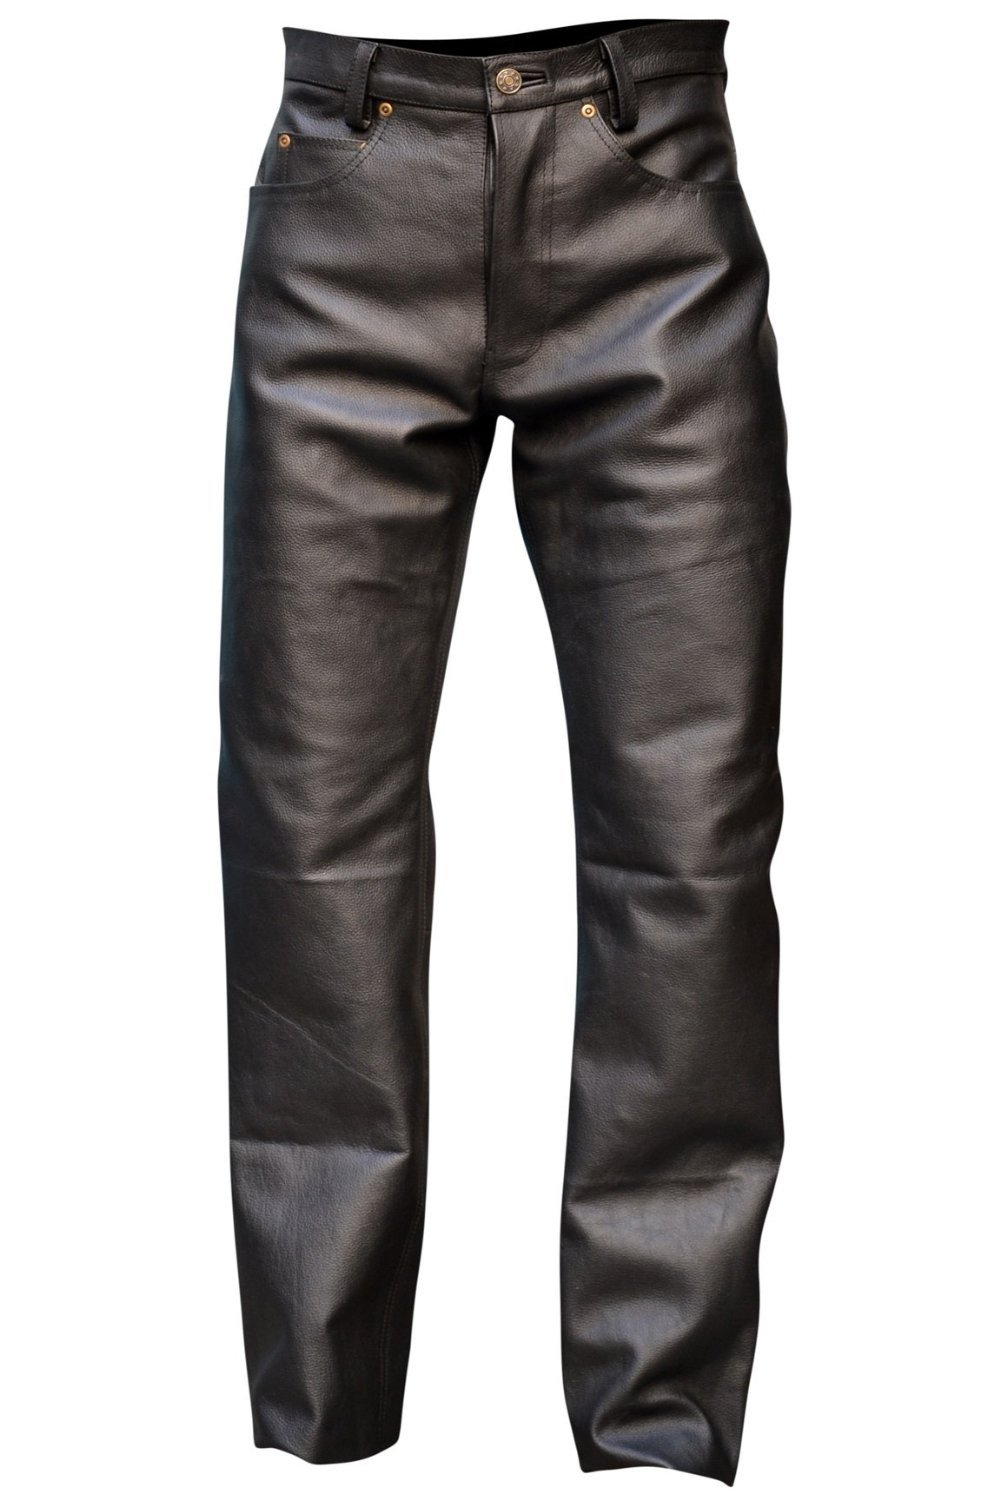 Mens Genuine Leather Pant 5 Pockets Jeans Style Button Fly Model (34 Inch Waist)